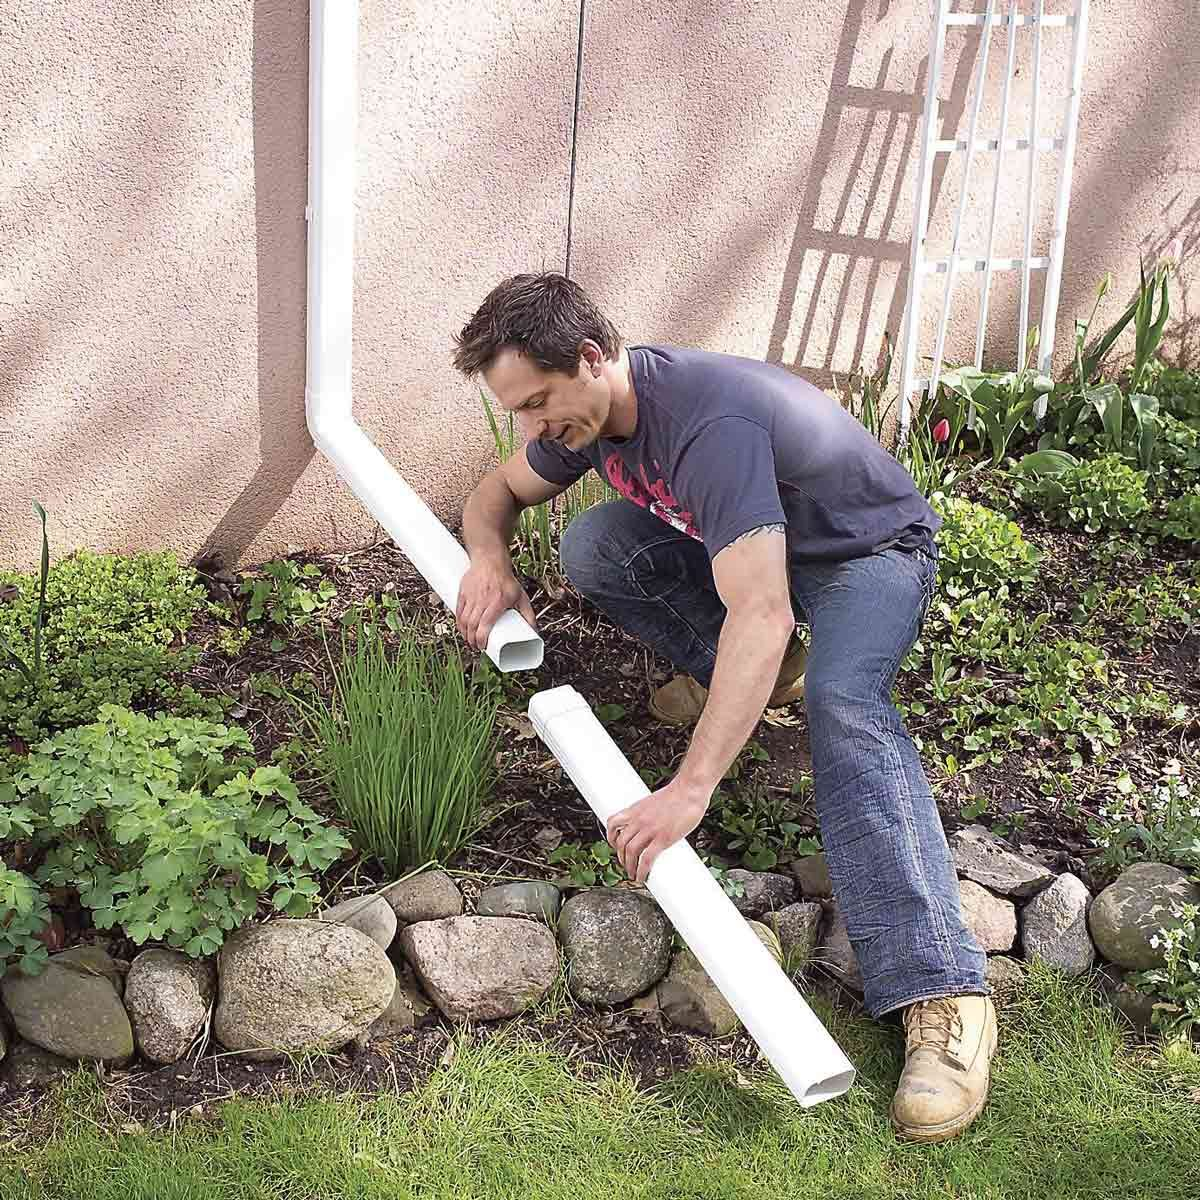 How to Achieve Better Yard Drainage | Family Handyman Rain Garden Discharge Sump Design on sprinkler discharge, effluent discharge, drainage discharge, pump discharge, water discharge, condensate discharge,